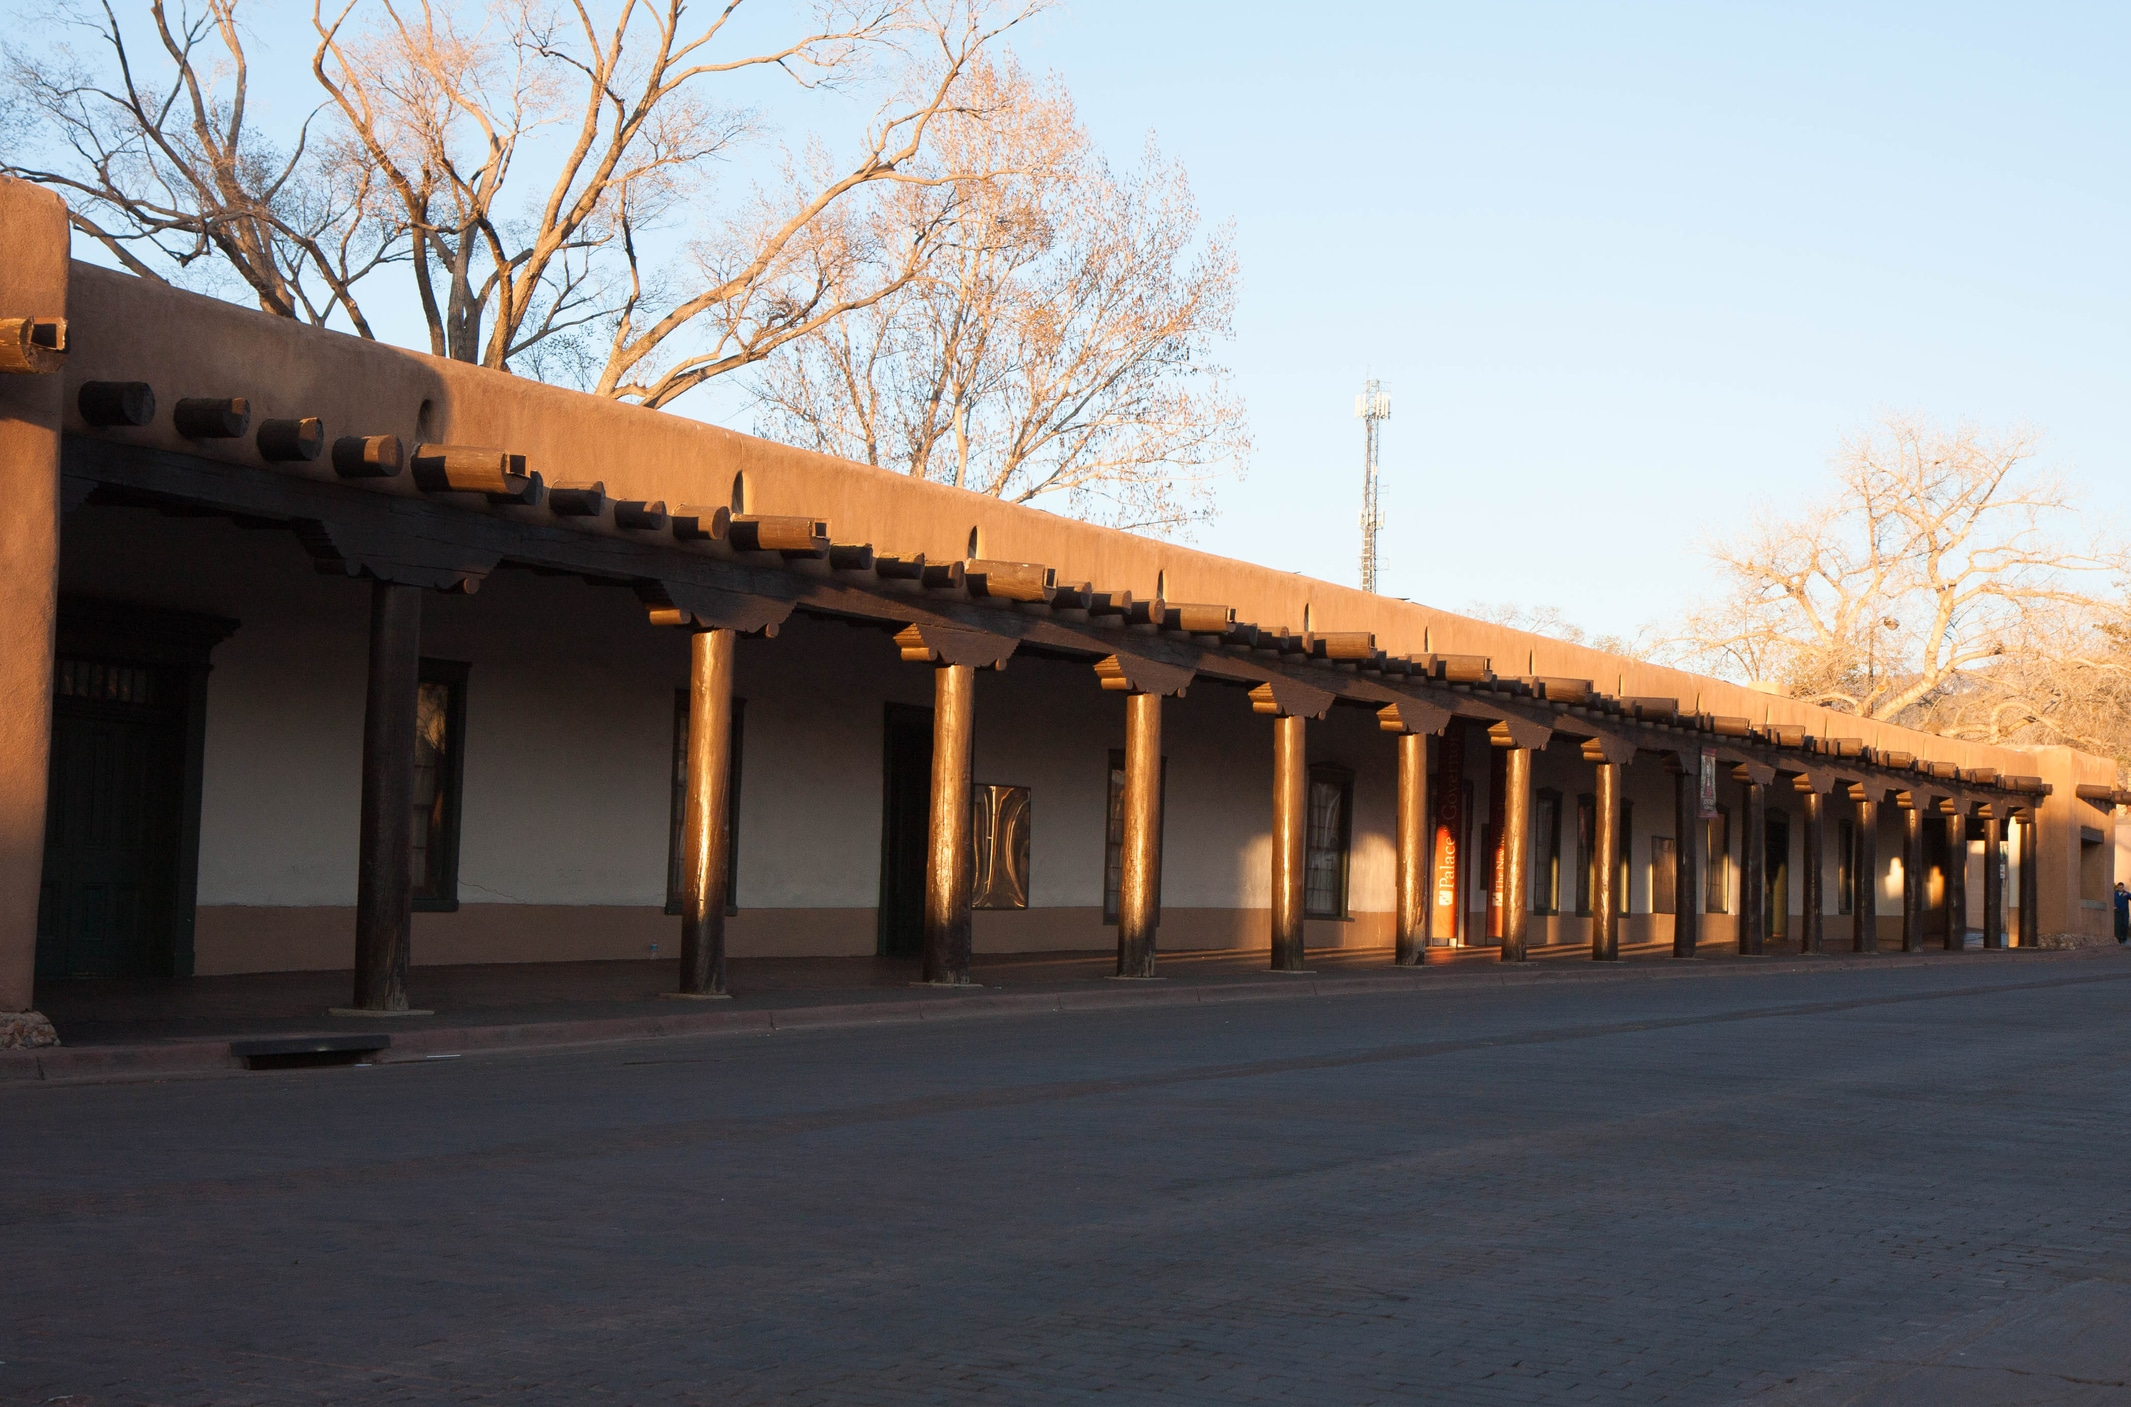 One of the oldest buildings in America, dating back to 1610, the Palace of the Governors hosts a daily Native American Market. Photograph shot at sunset, trees in background, no people visible.